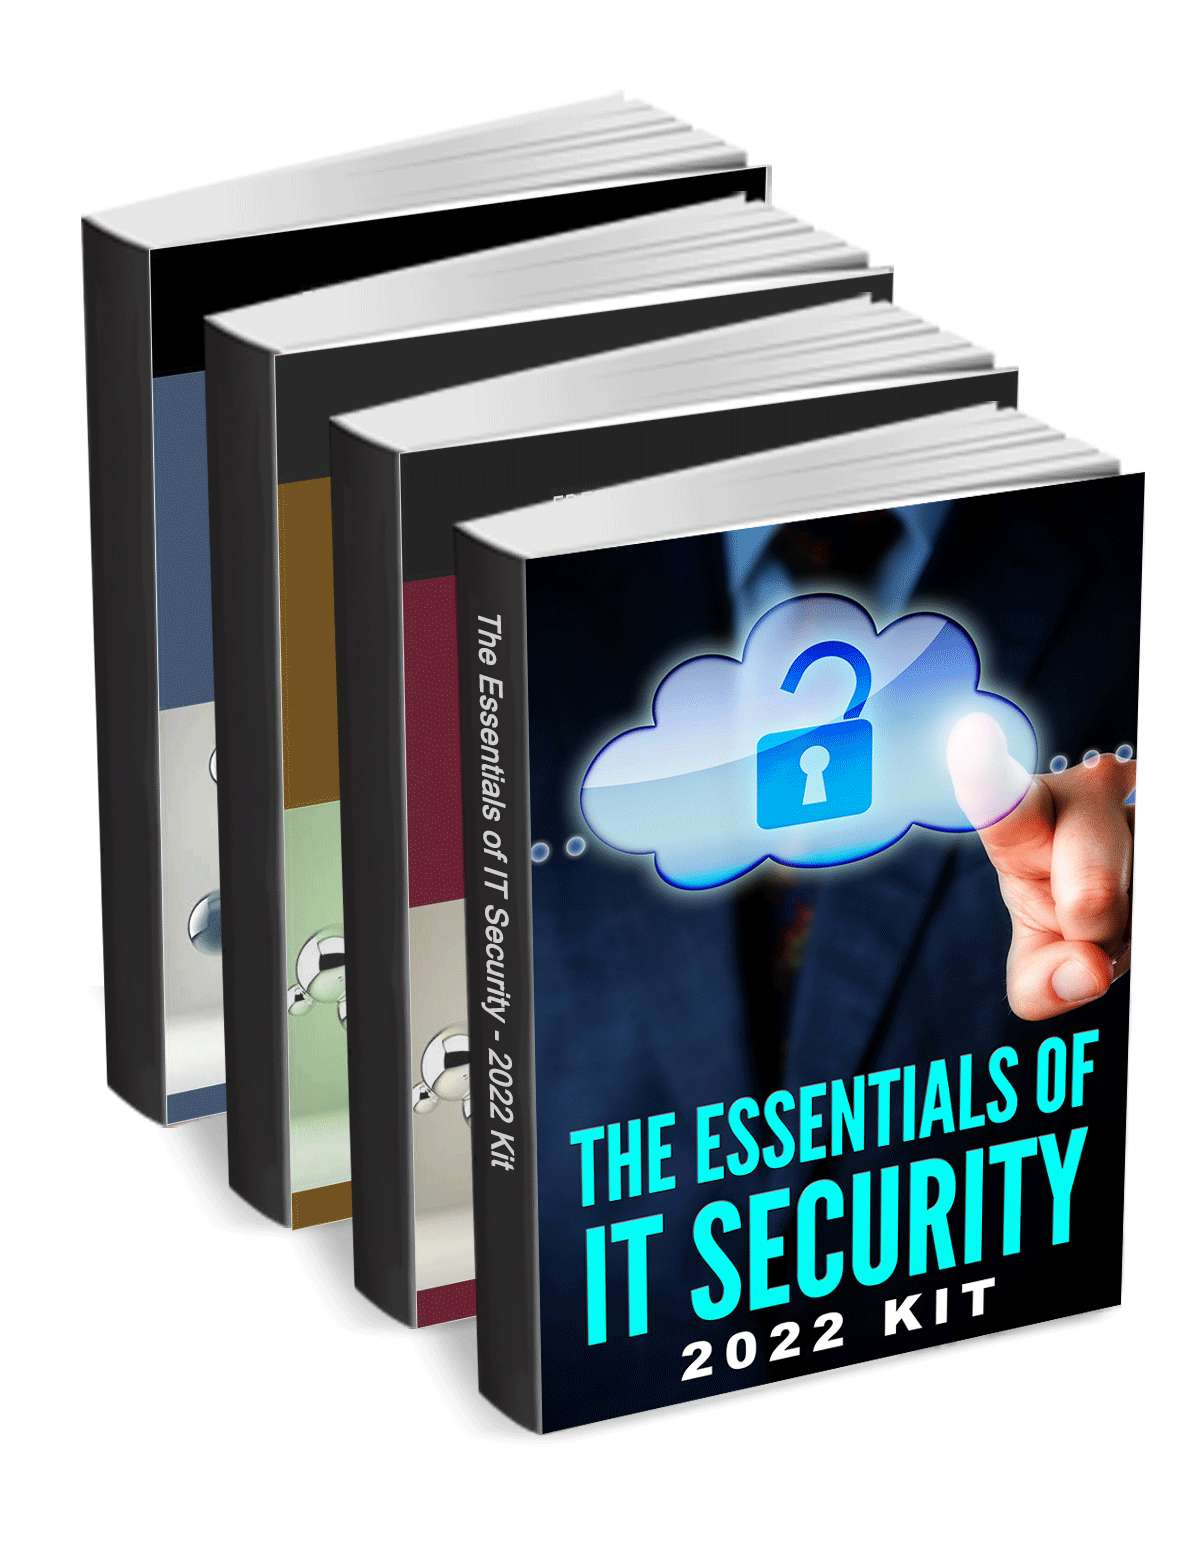 The Essentials of IT Security - June 2017 Kit